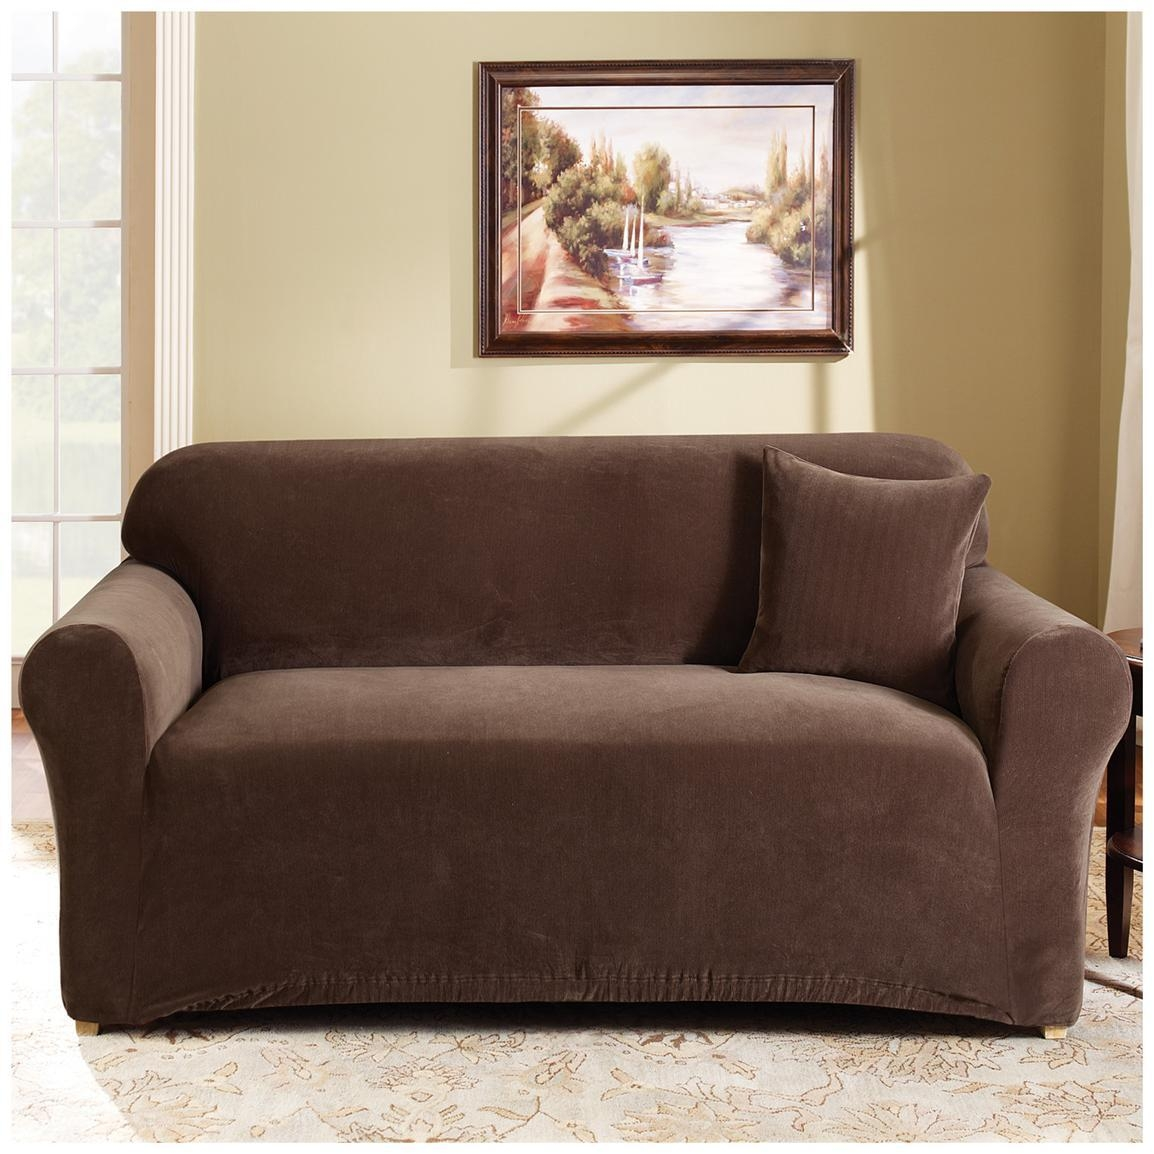 Furniture: Contemporary Sofa Design With Sure Fit Couch Covers Inside Sofa And Loveseat Covers (Image 5 of 20)